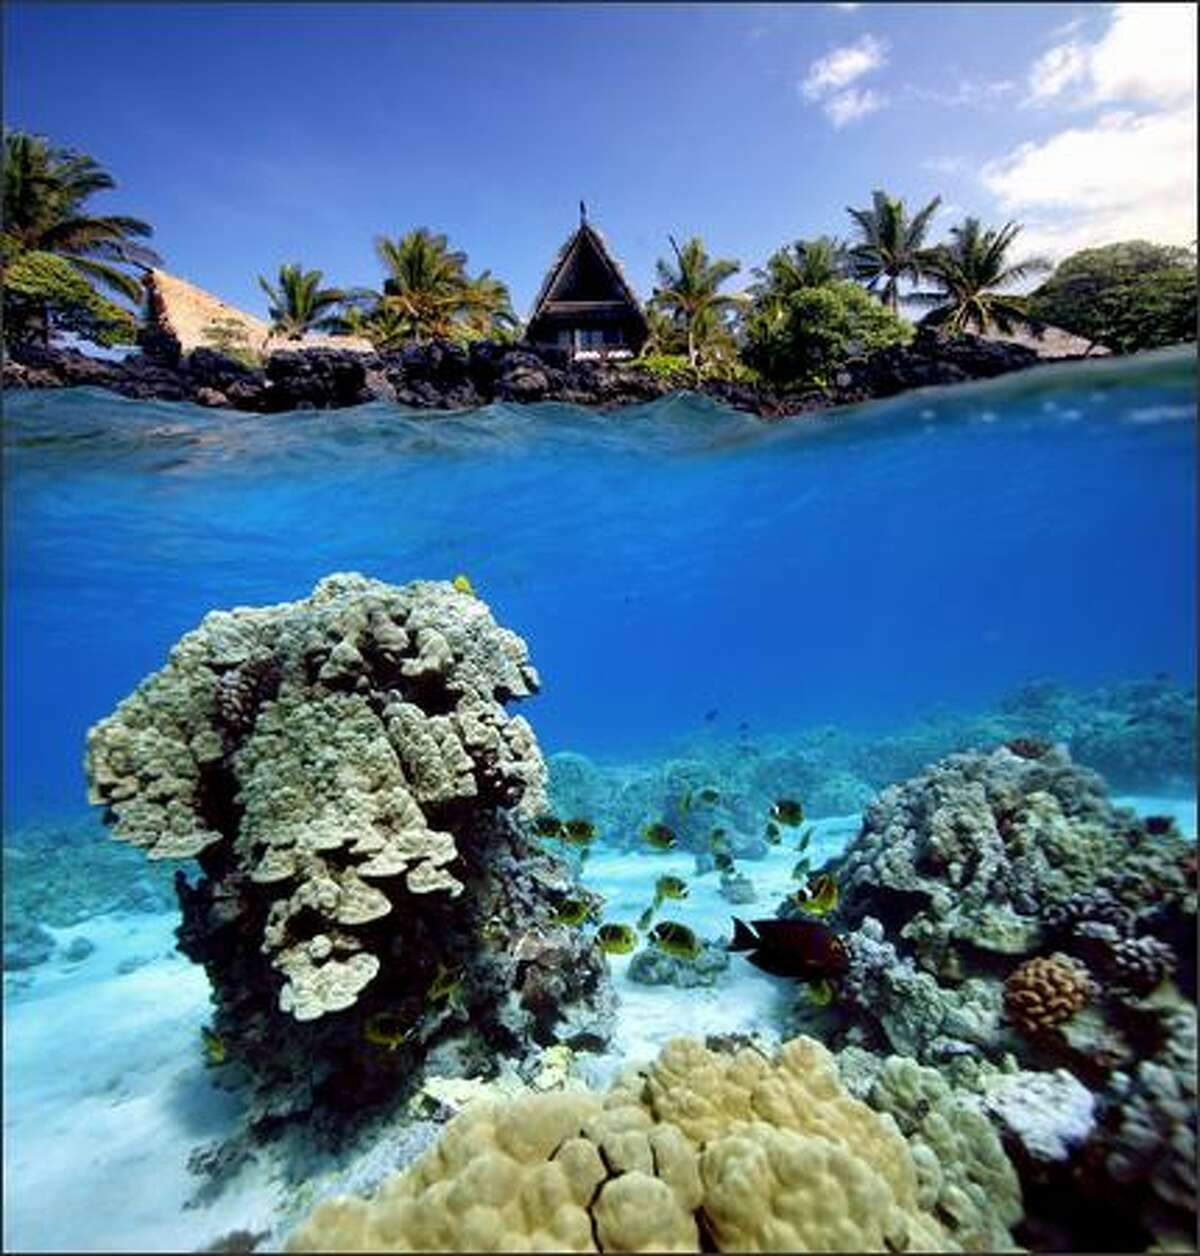 The shallow waters of Kahuwai Bay, full of beautiful fish, offer excellent snorkeling. Kona Village